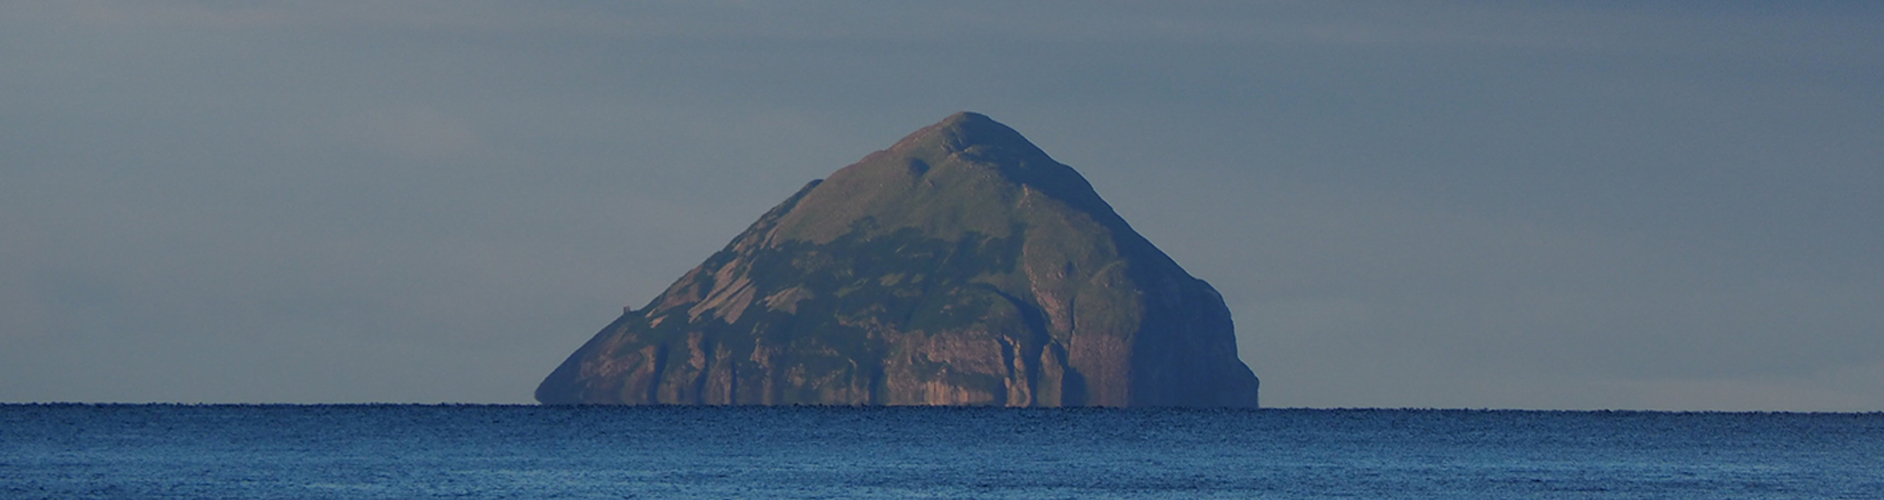 Wildlife Cruise|Scottish Cruise|Arran and Ailsa Craig